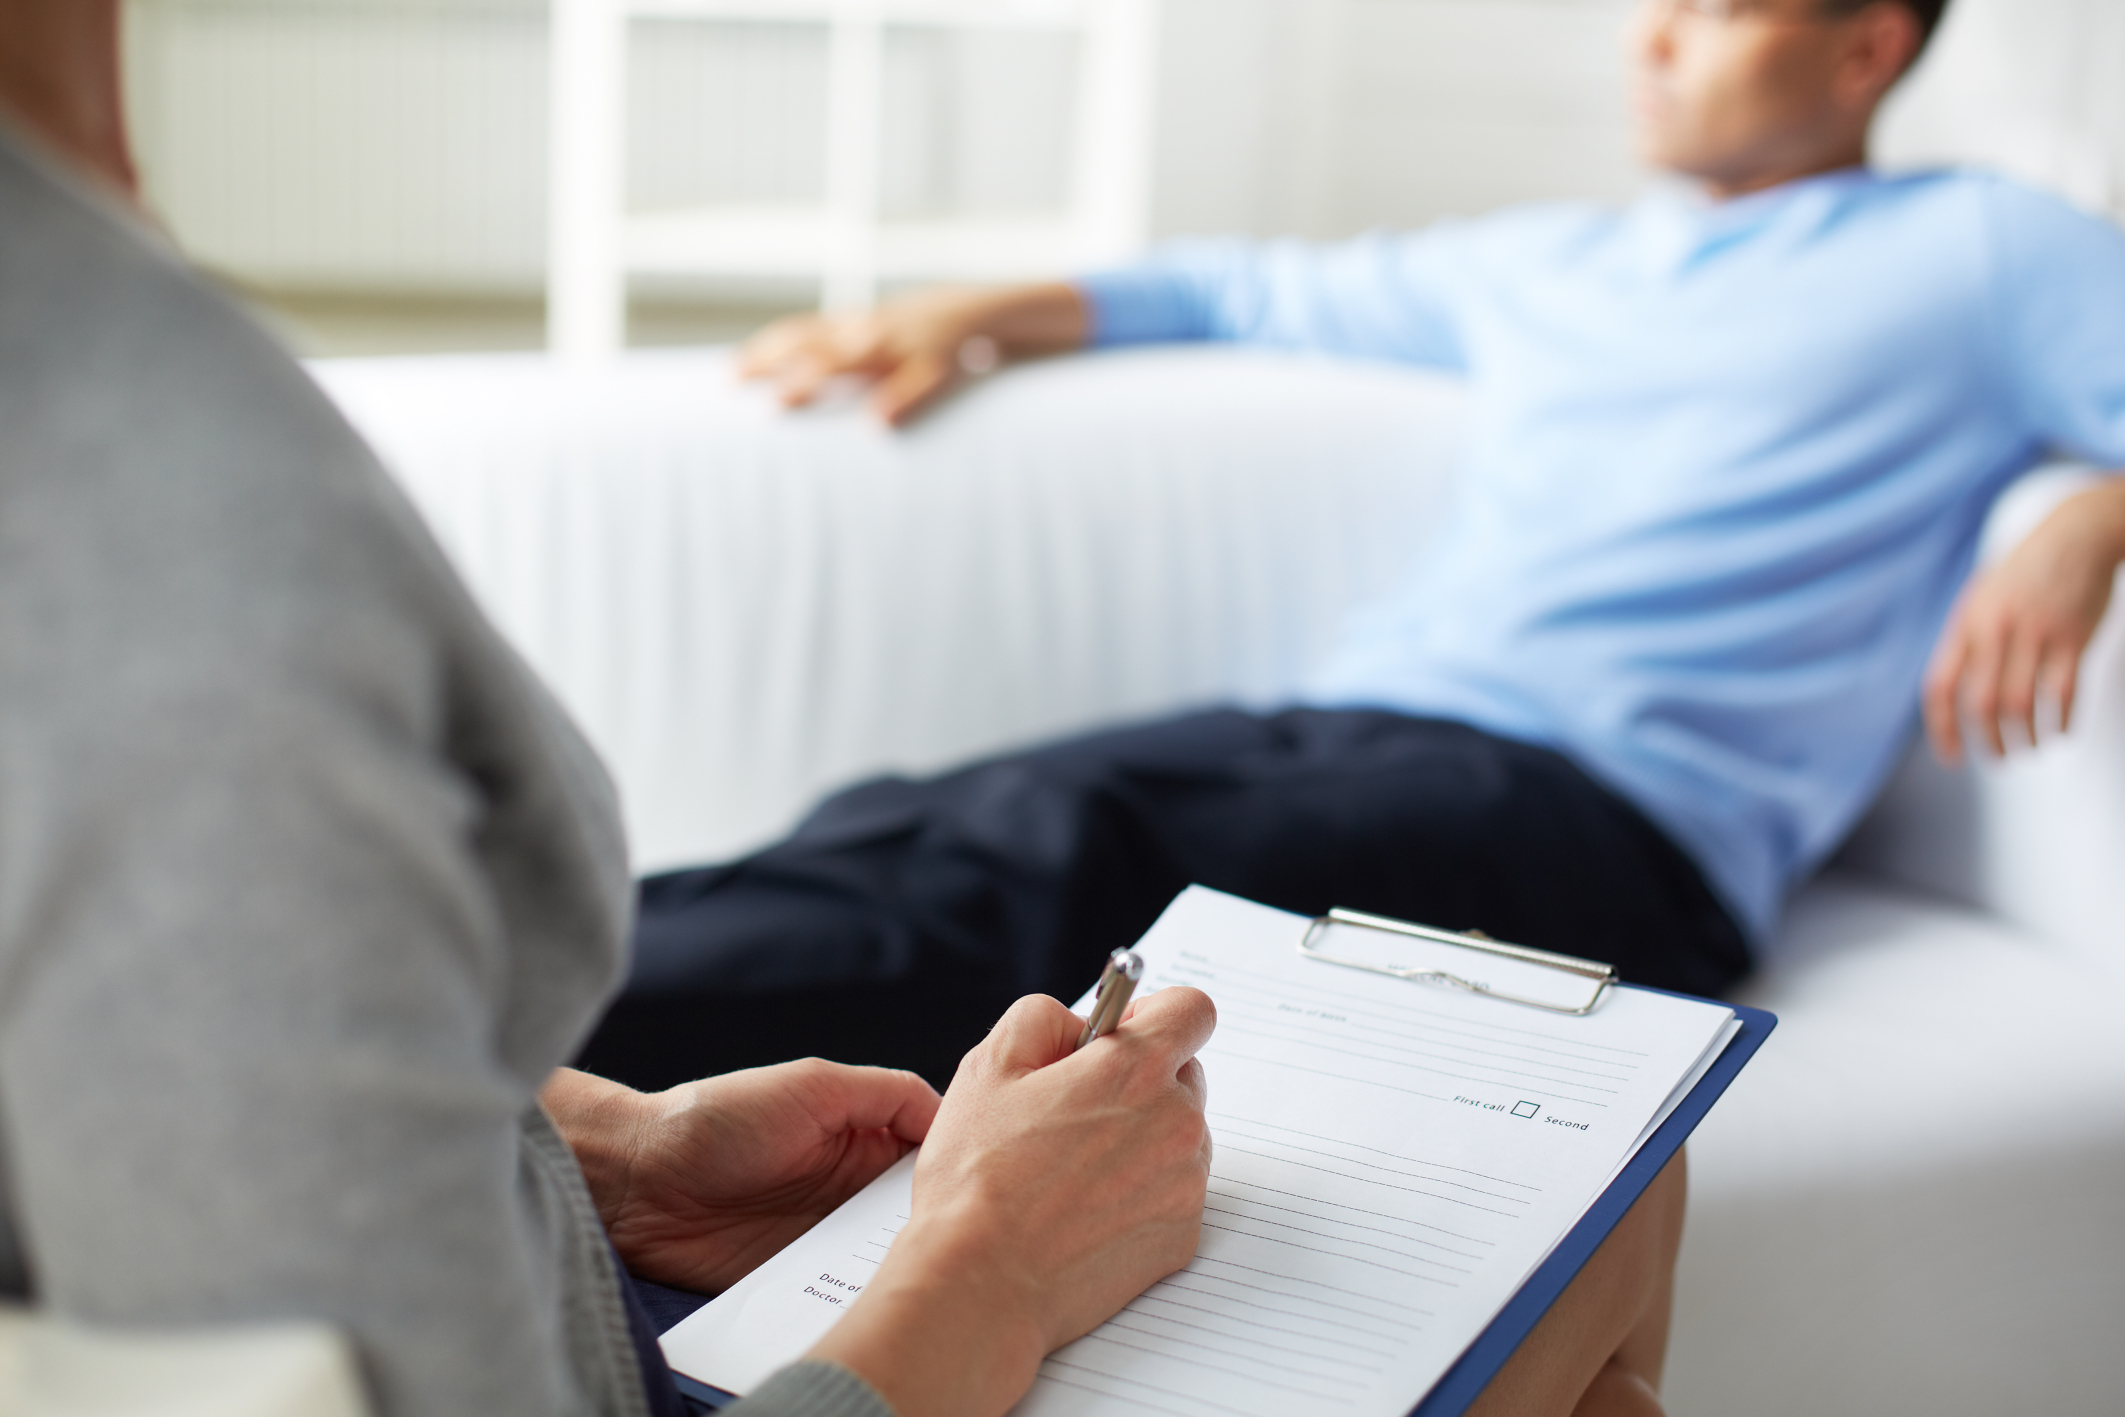 Psychogenic non-epileptic seizure patients can reduce seizures with cognitive behavior therapy (CBT)